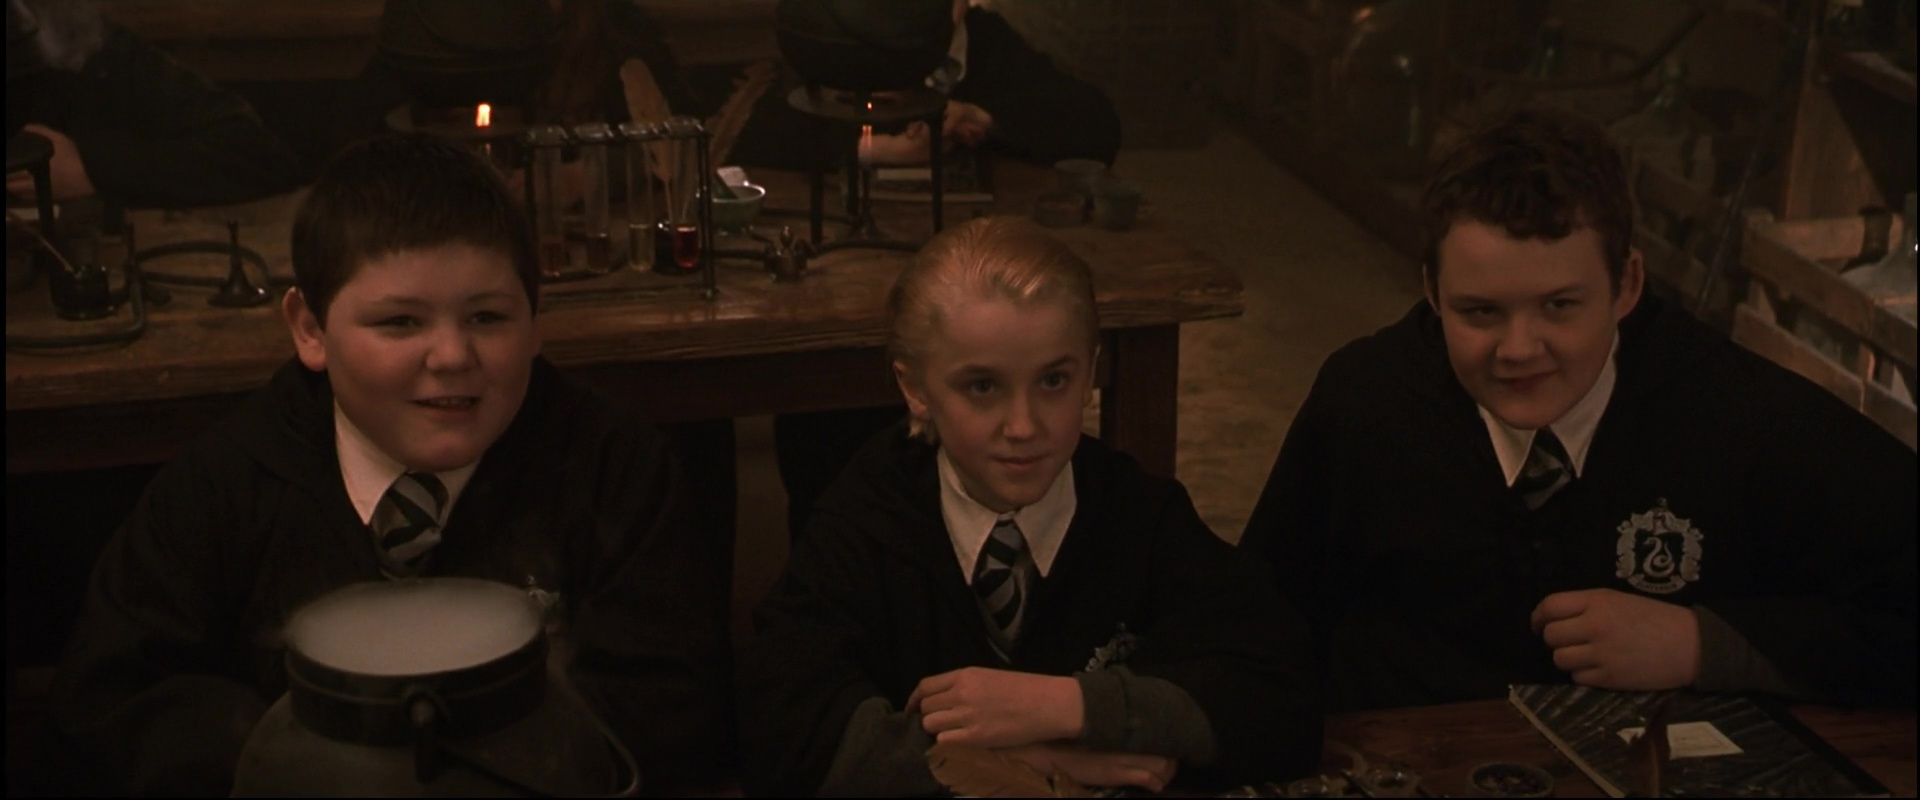 Gregory Goyle - Harry Potter Wiki